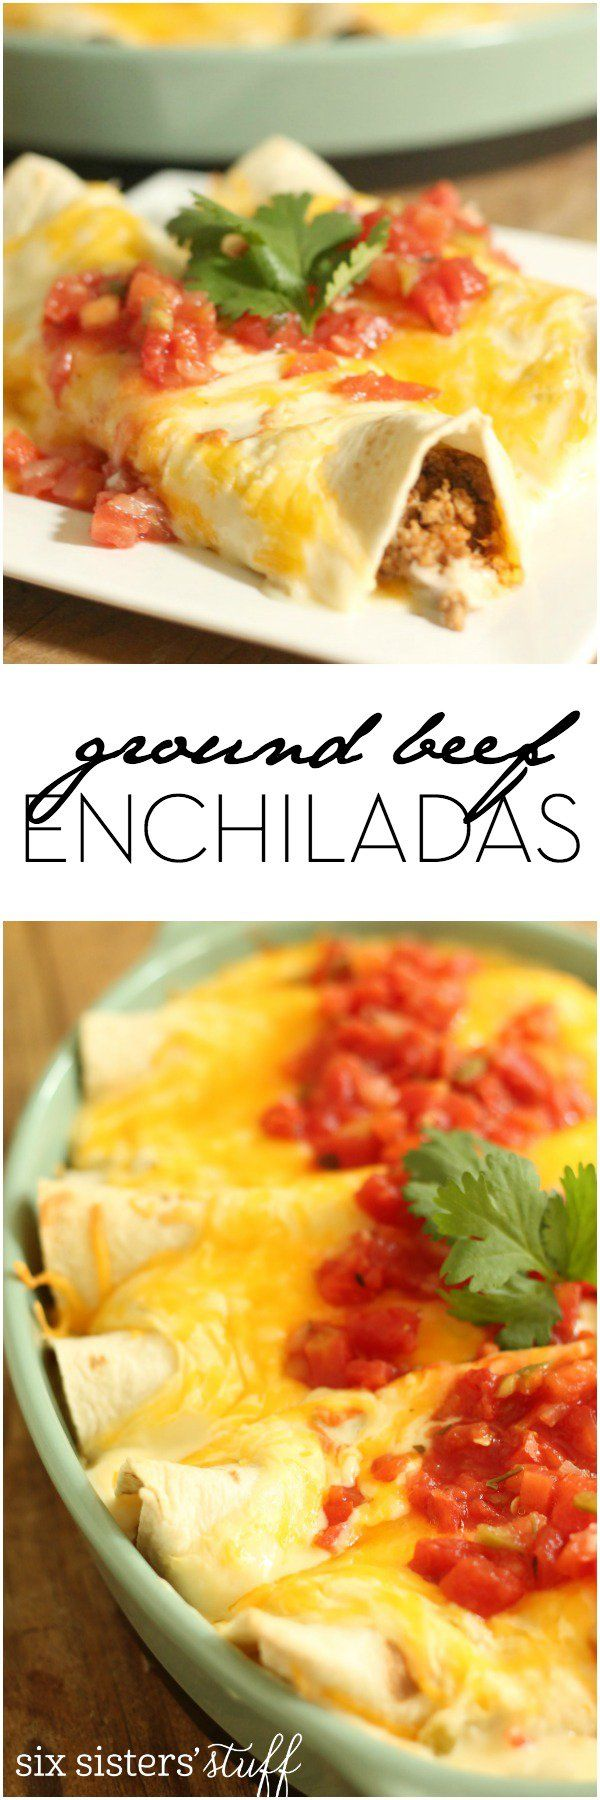 Ground Beef Enchiladas Recipe - Six Sisters' Stuff